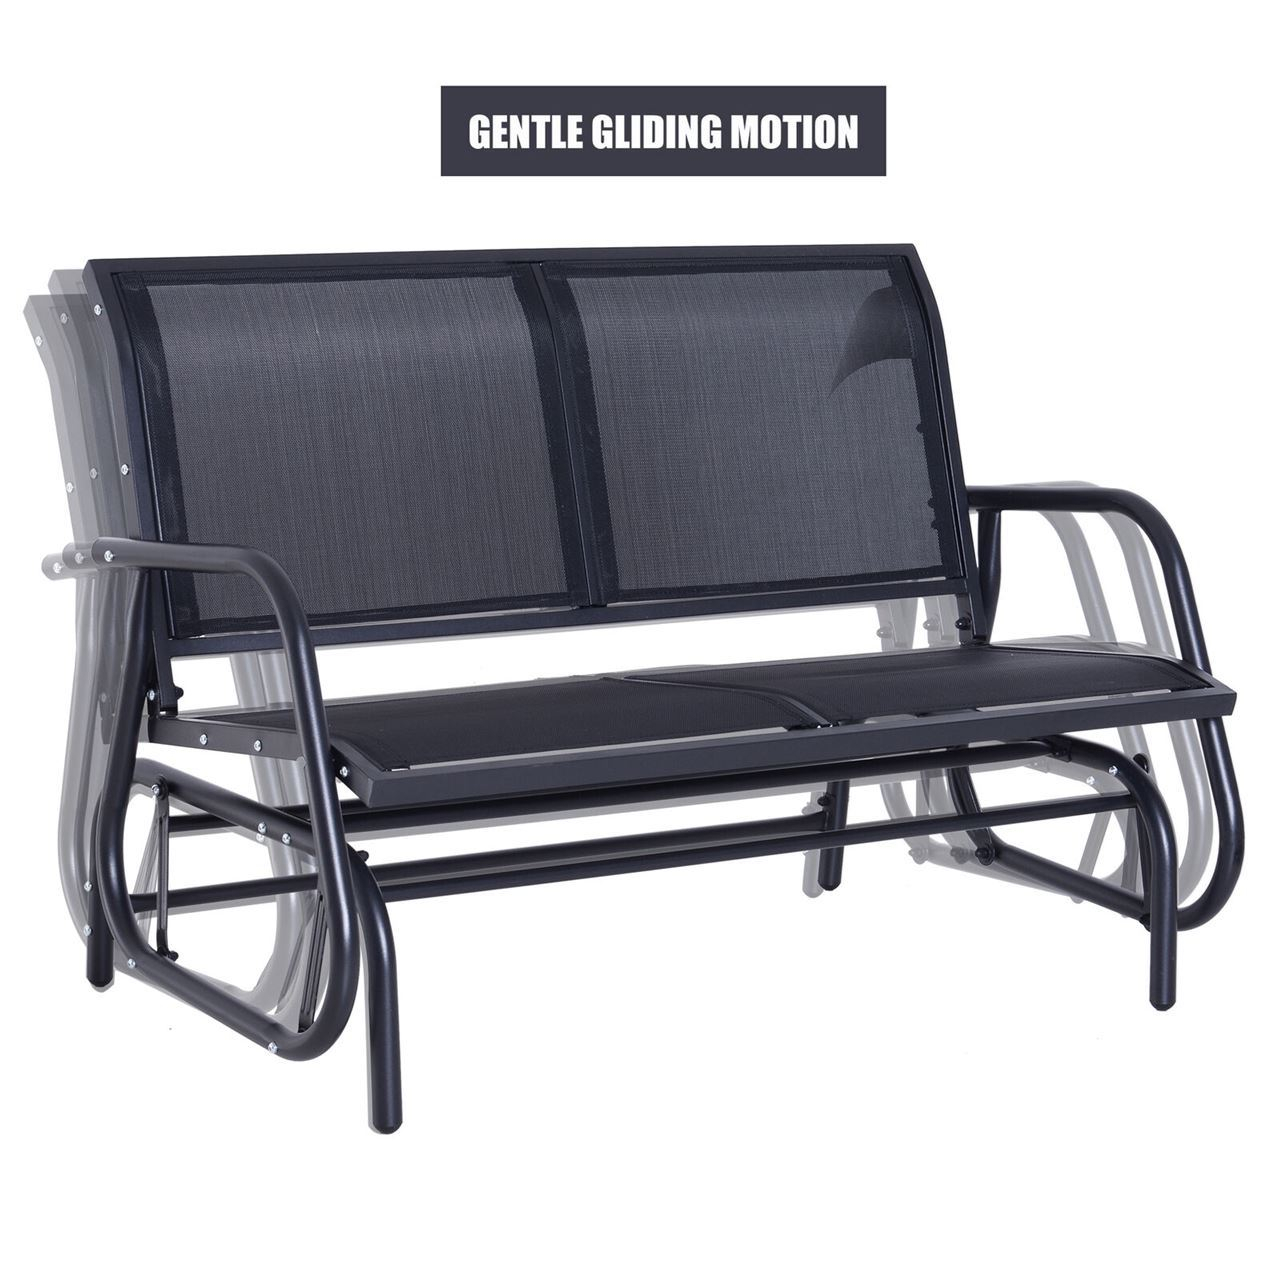 Outdoor Patio Swing Glider Bench Chair – Dark Gray Pertaining To Black Outdoor Durable Steel Frame Patio Swing Glider Bench Chairs (Image 15 of 25)